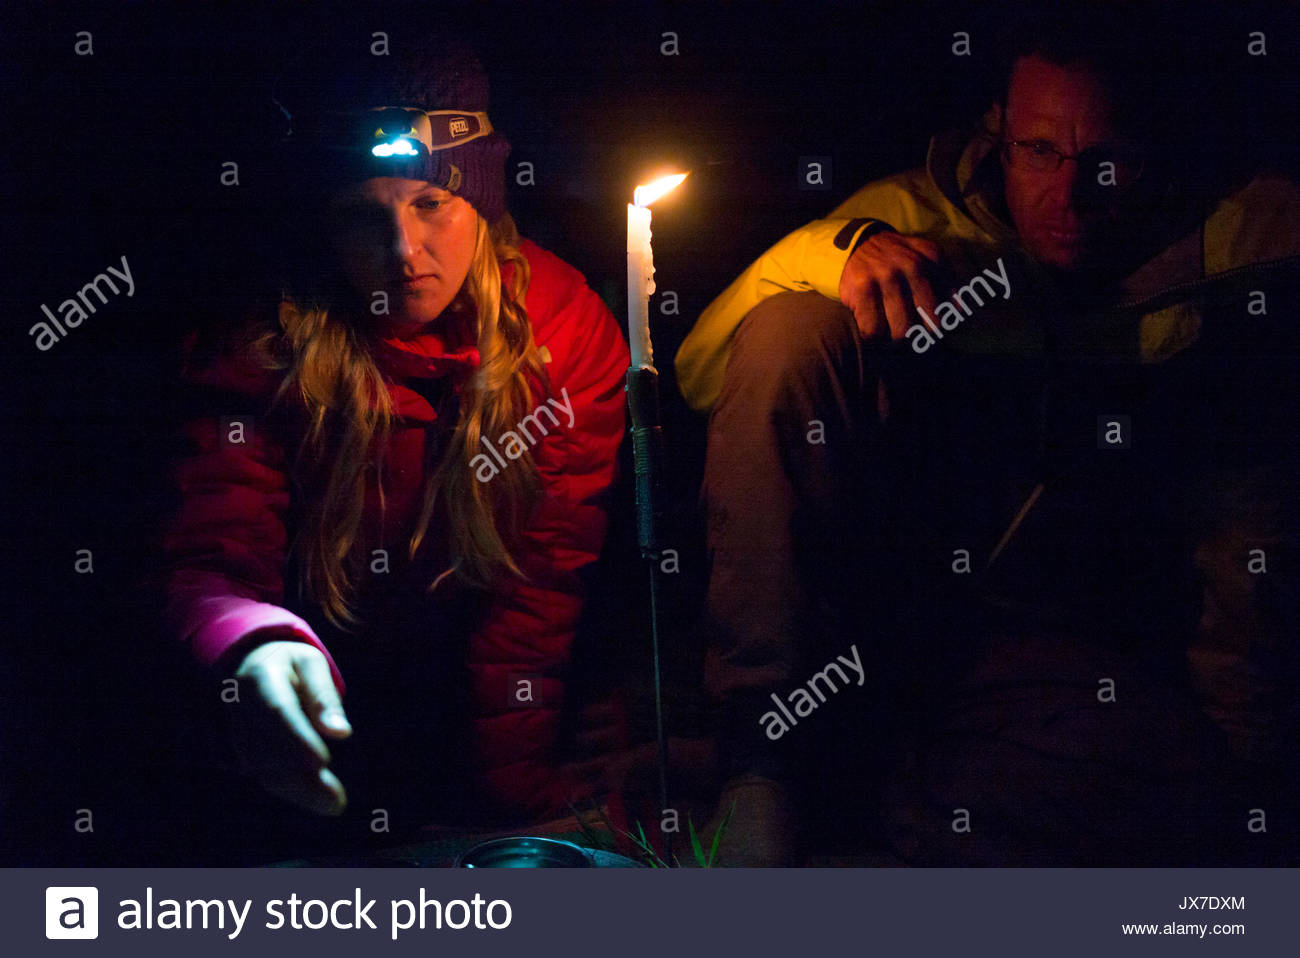 Two expedition members seated on either side of a burning candle. - Stock Image